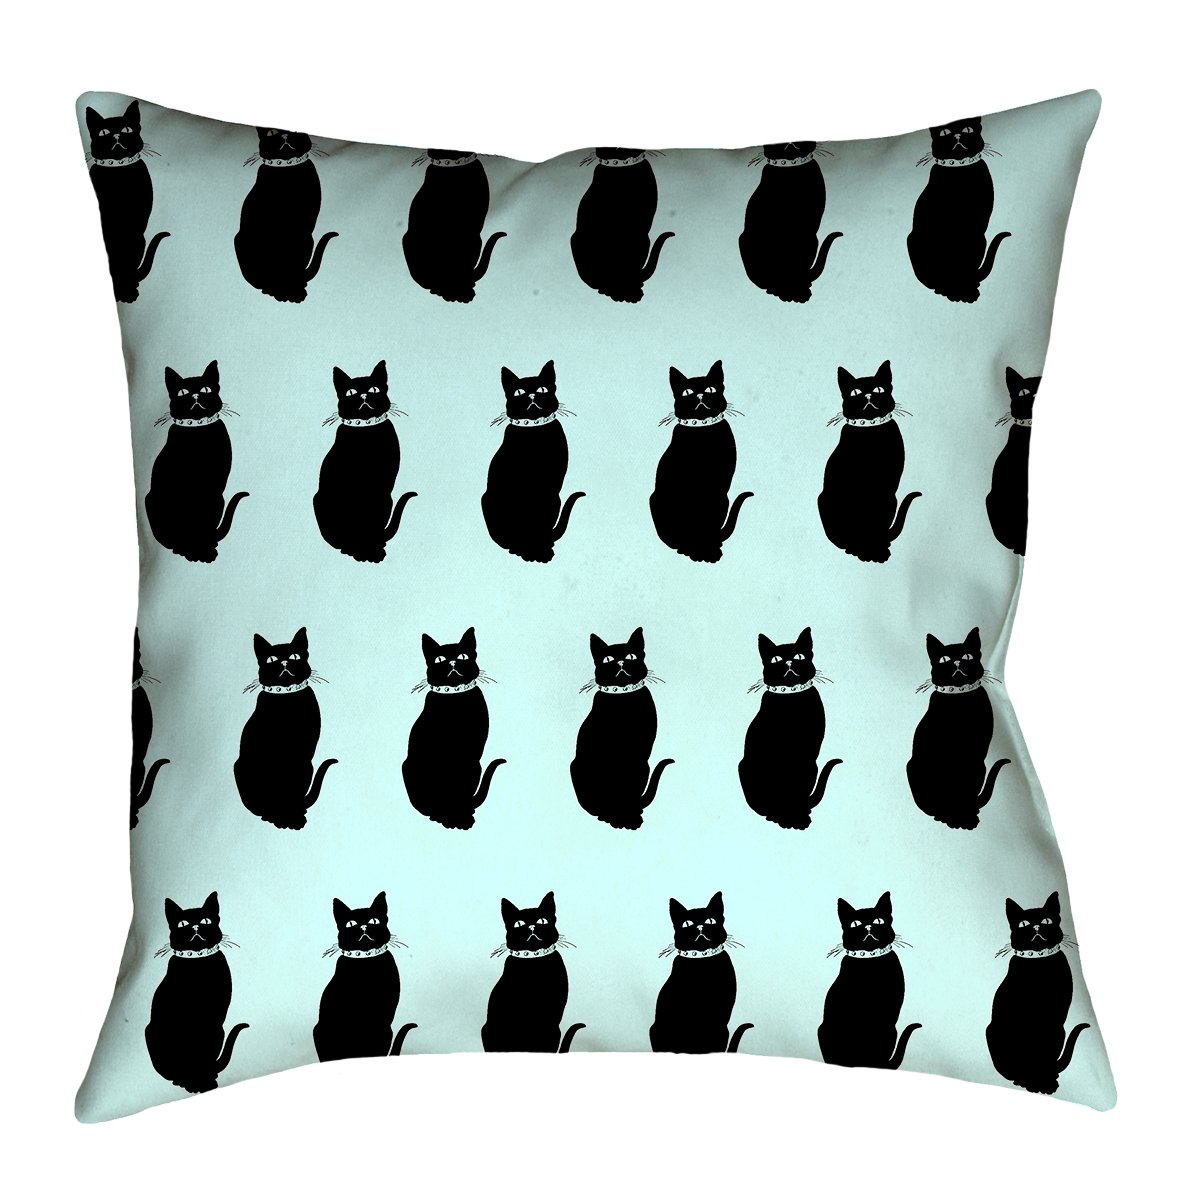 ArtVerse Katelyn Smith 16 x 16 Spun Polyester Double Sided Print with Concealed Zipper /& Insert Blue Cat Pattern Pillow